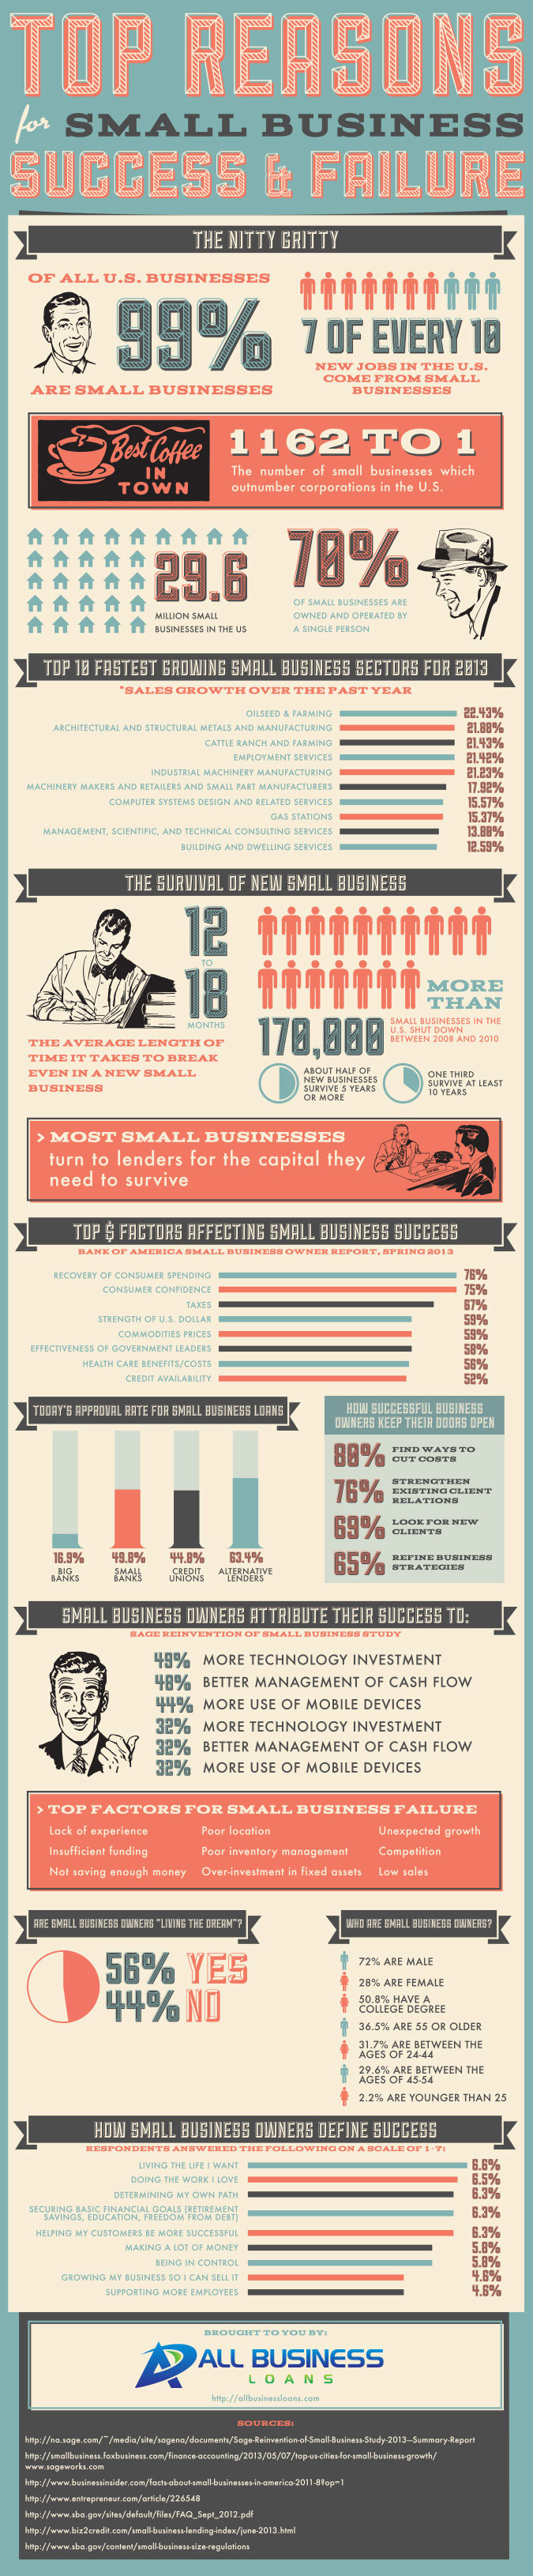 Top Reasons for Small Business Success and Failure